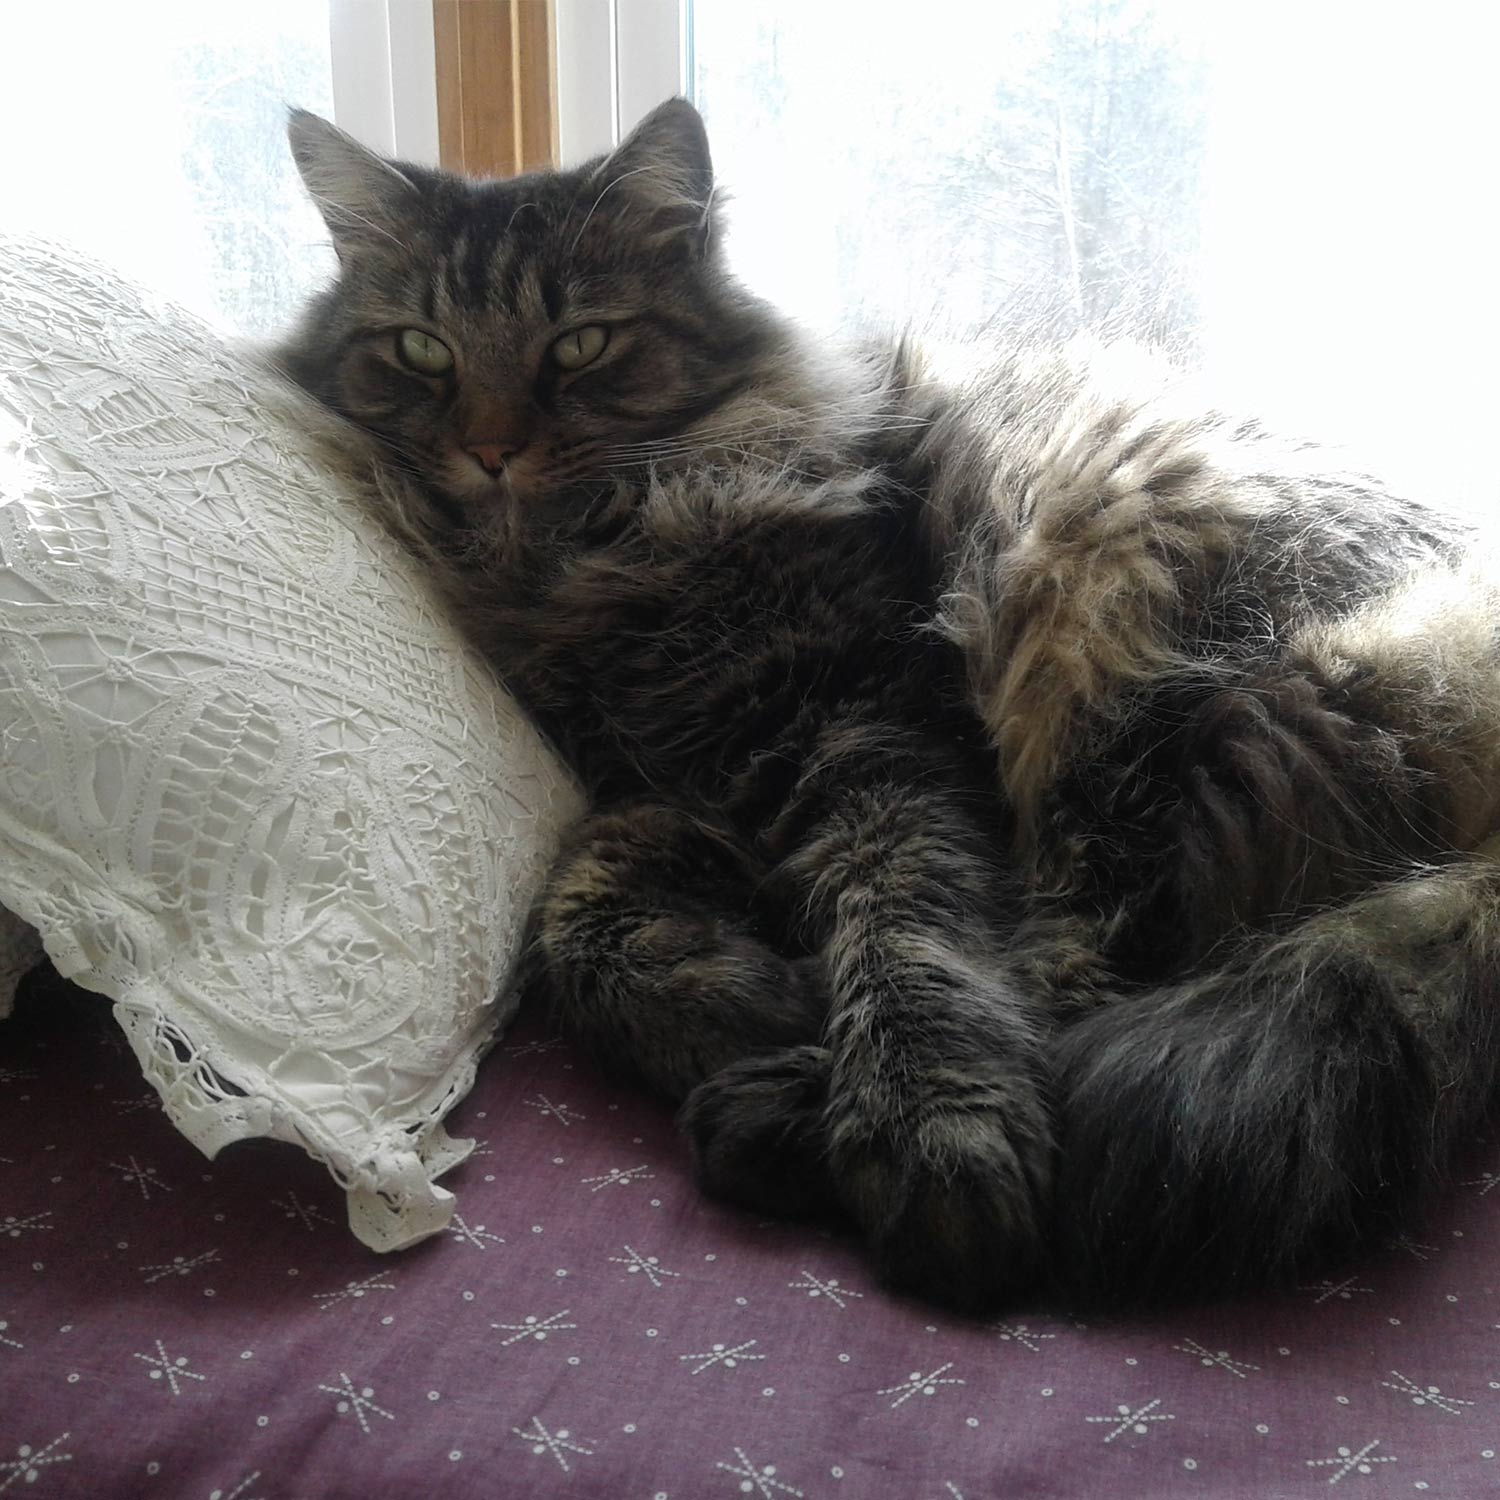 Meet Sam. Marianne M. sent pics of her handsome,grey, green-eyed cat Sam, hanging out on his favoriteblanket chest, alternately napping and watching thesquirrels and birds outside.